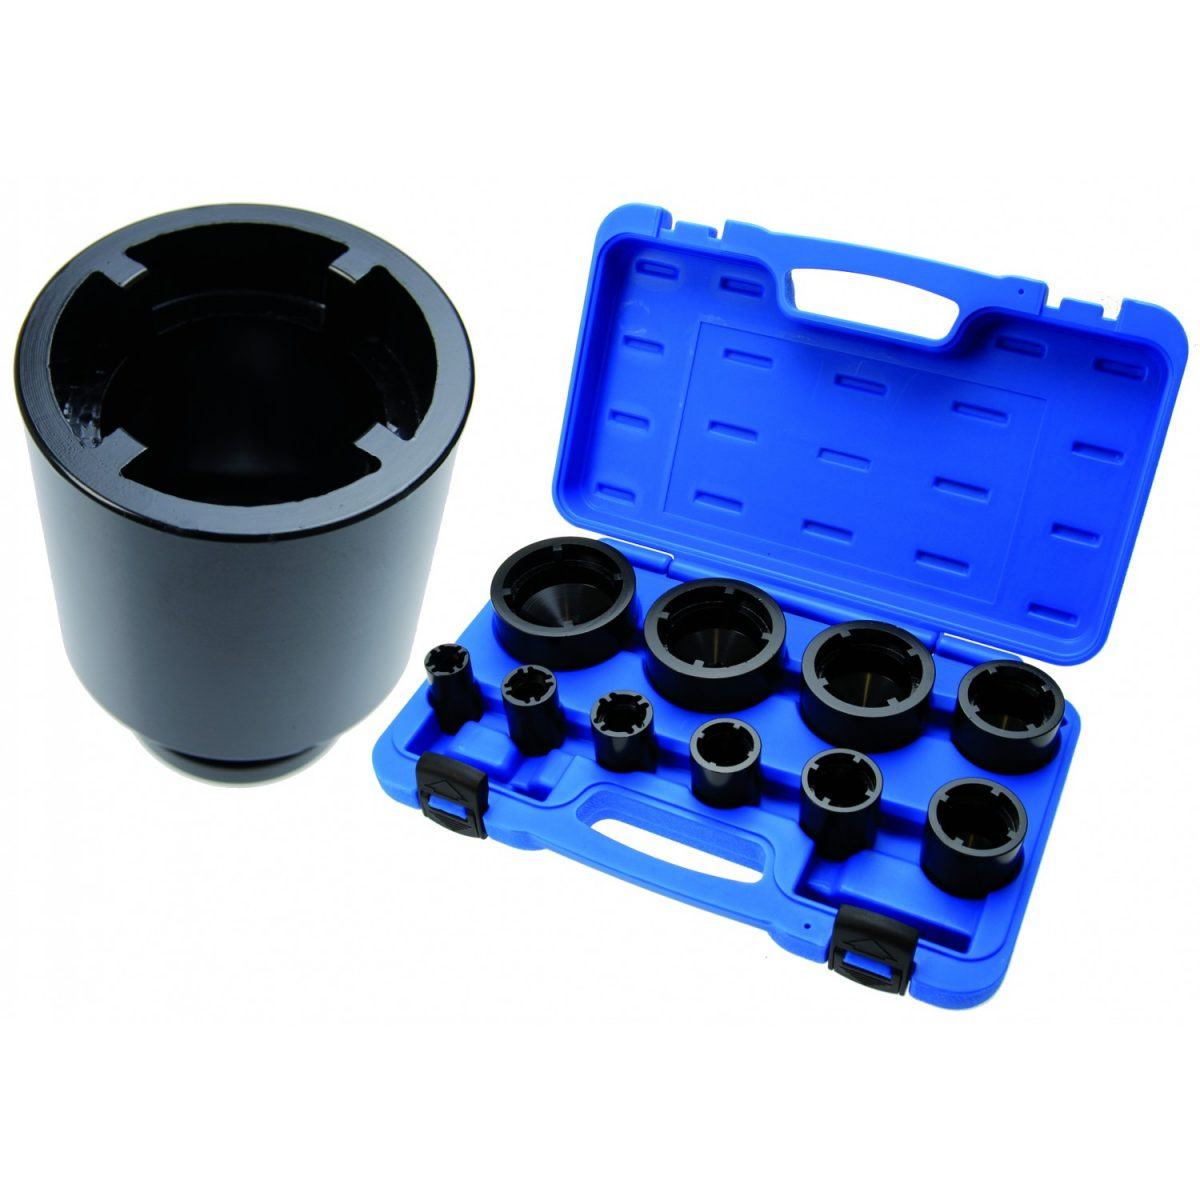 10-piece Special Socket with Inside Tooth for Grooved Nut